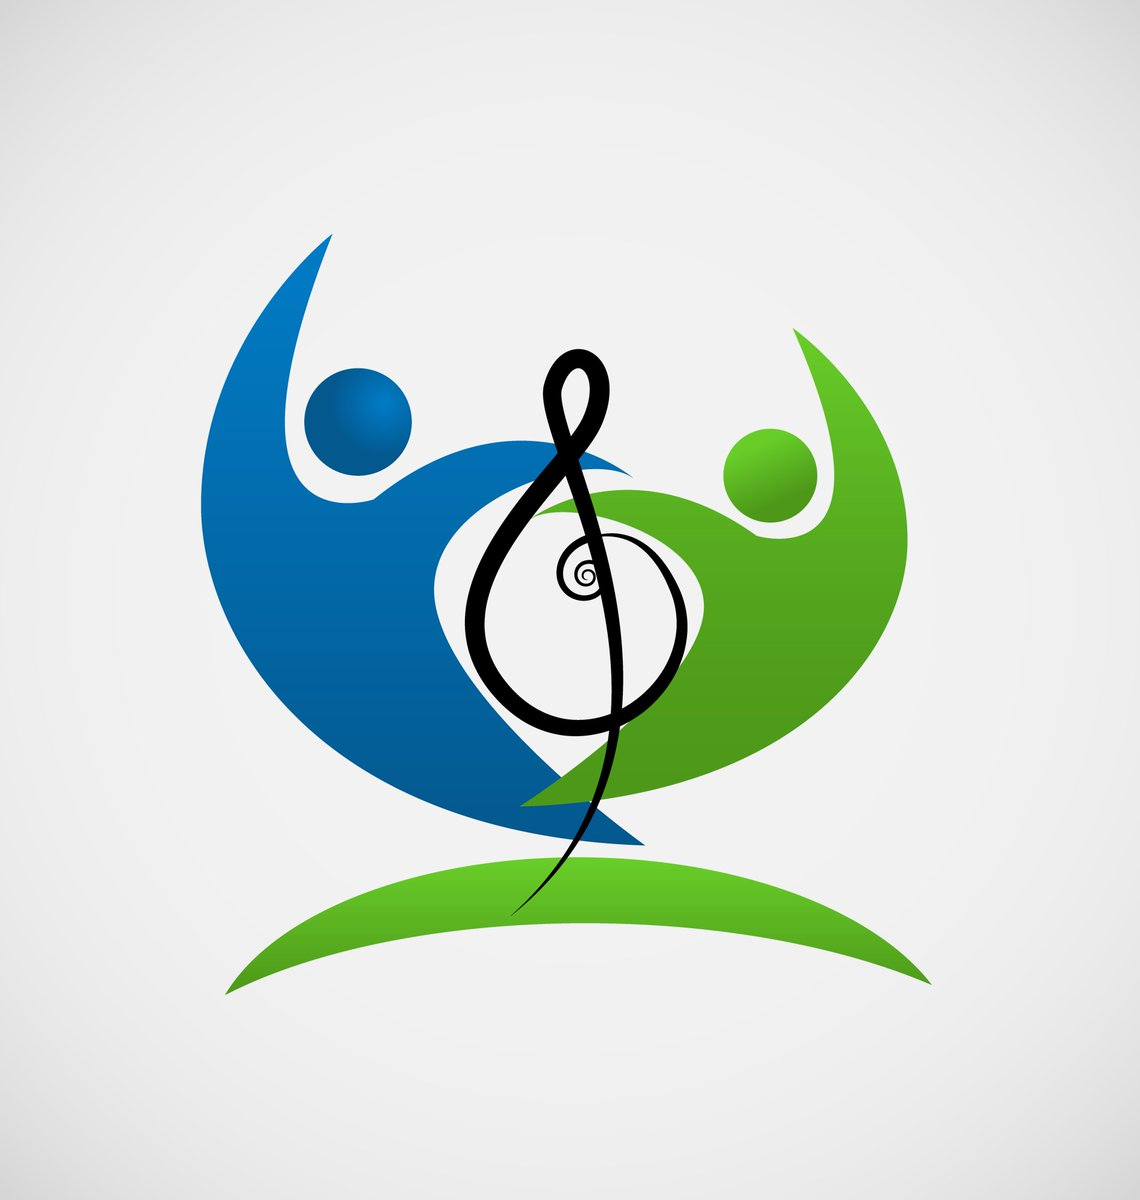 Sound to symbol on twitter creative musictherapy to promote sound to symbol on twitter creative musictherapy to promote brain structure function and neurobehavioral outcomes in preterm infants biocorpaavc Choice Image